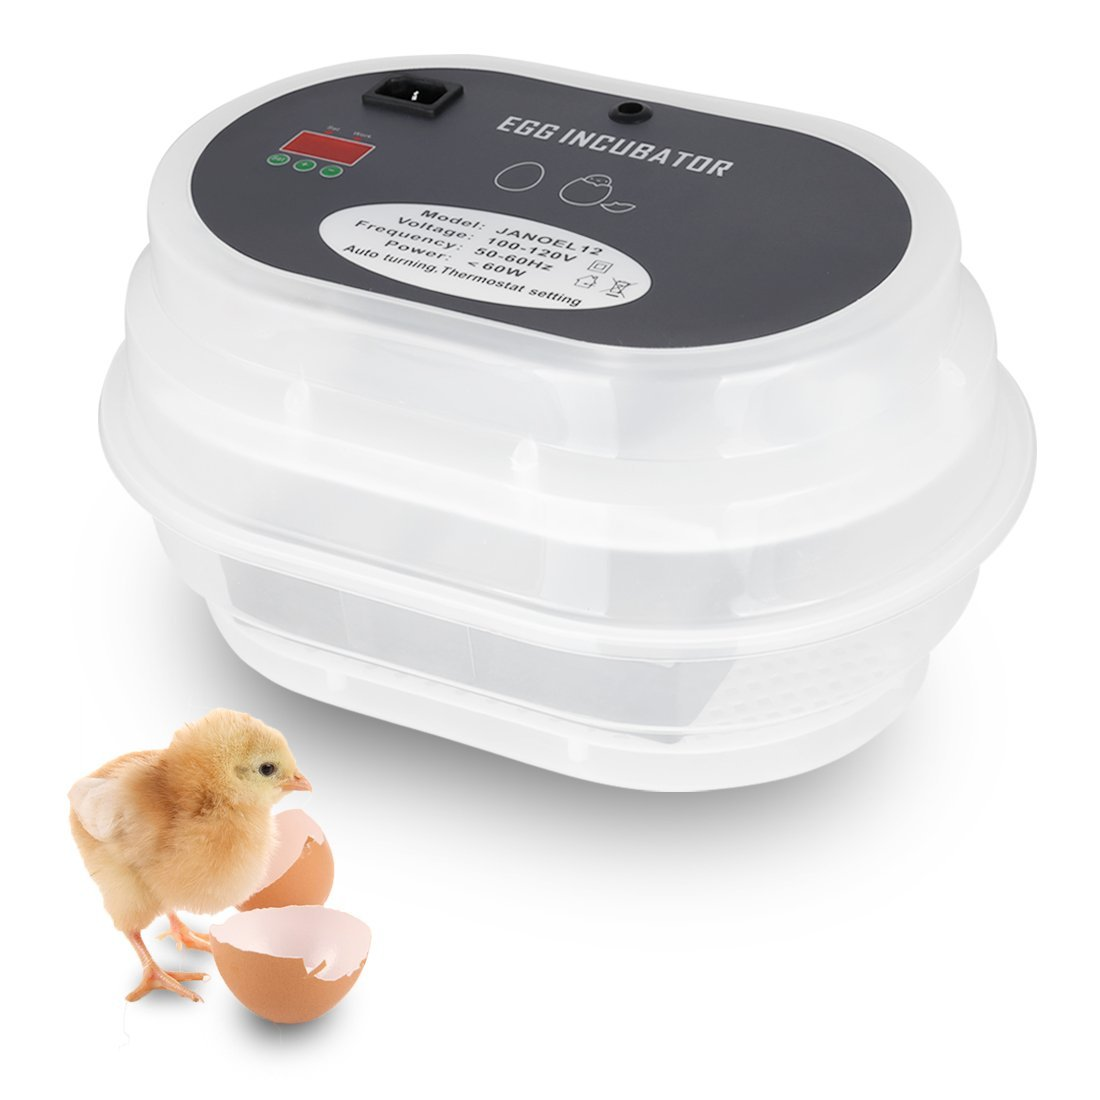 VIVOHOME Mini Digital Fully Automatic 9-12 Egg Incubator Temperature Control Poultry Hatcher Machine for Chicken Duck Bird Quail by VIVOHOME